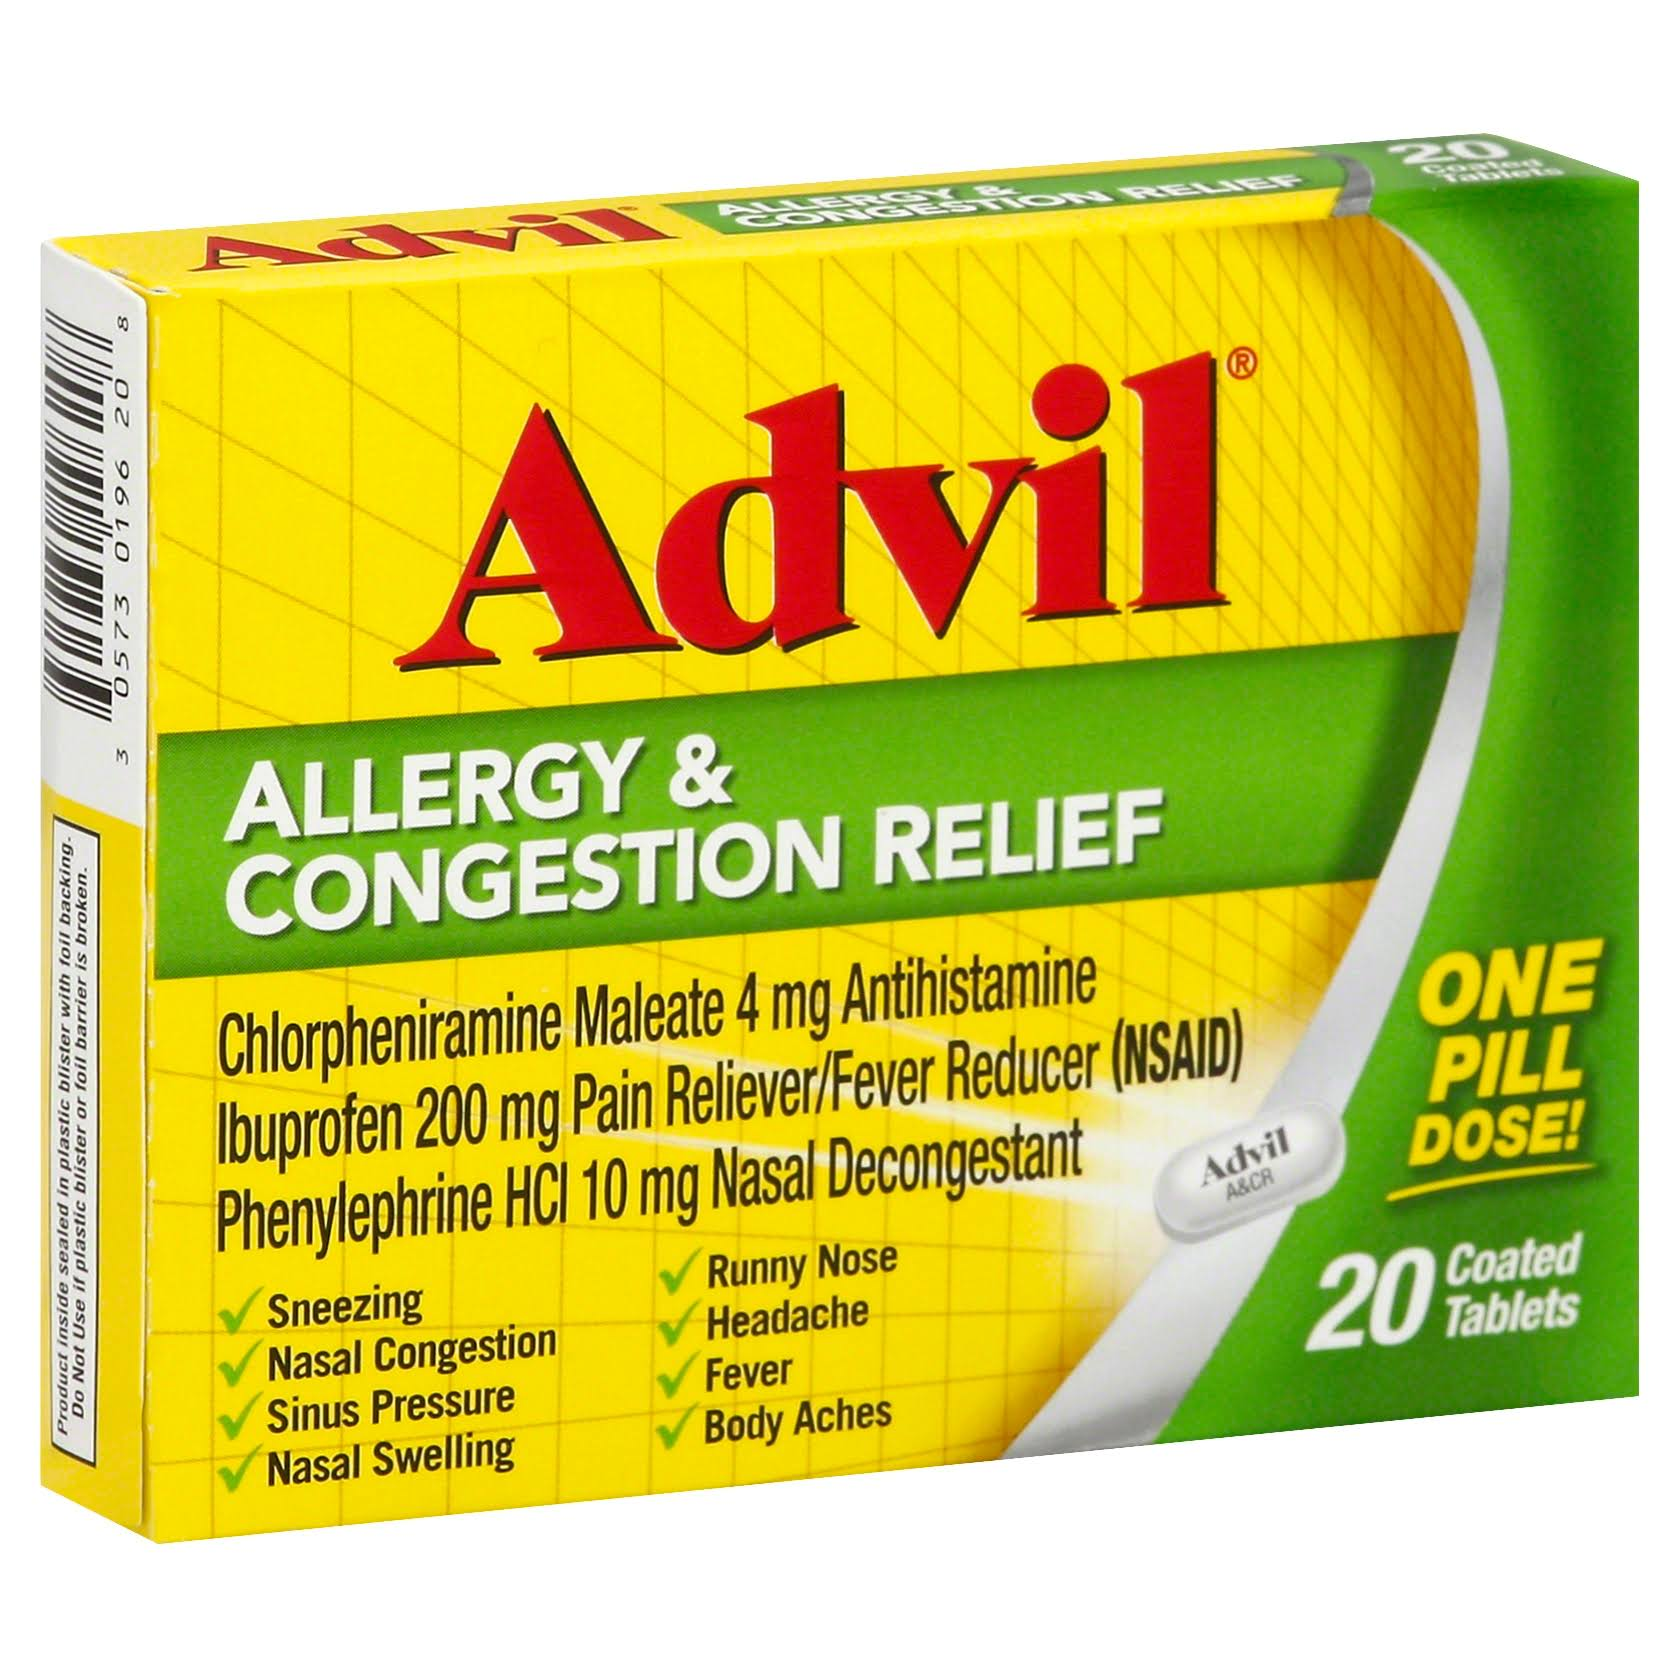 Advil Allergy and Congestion Relief - 20 Tablets